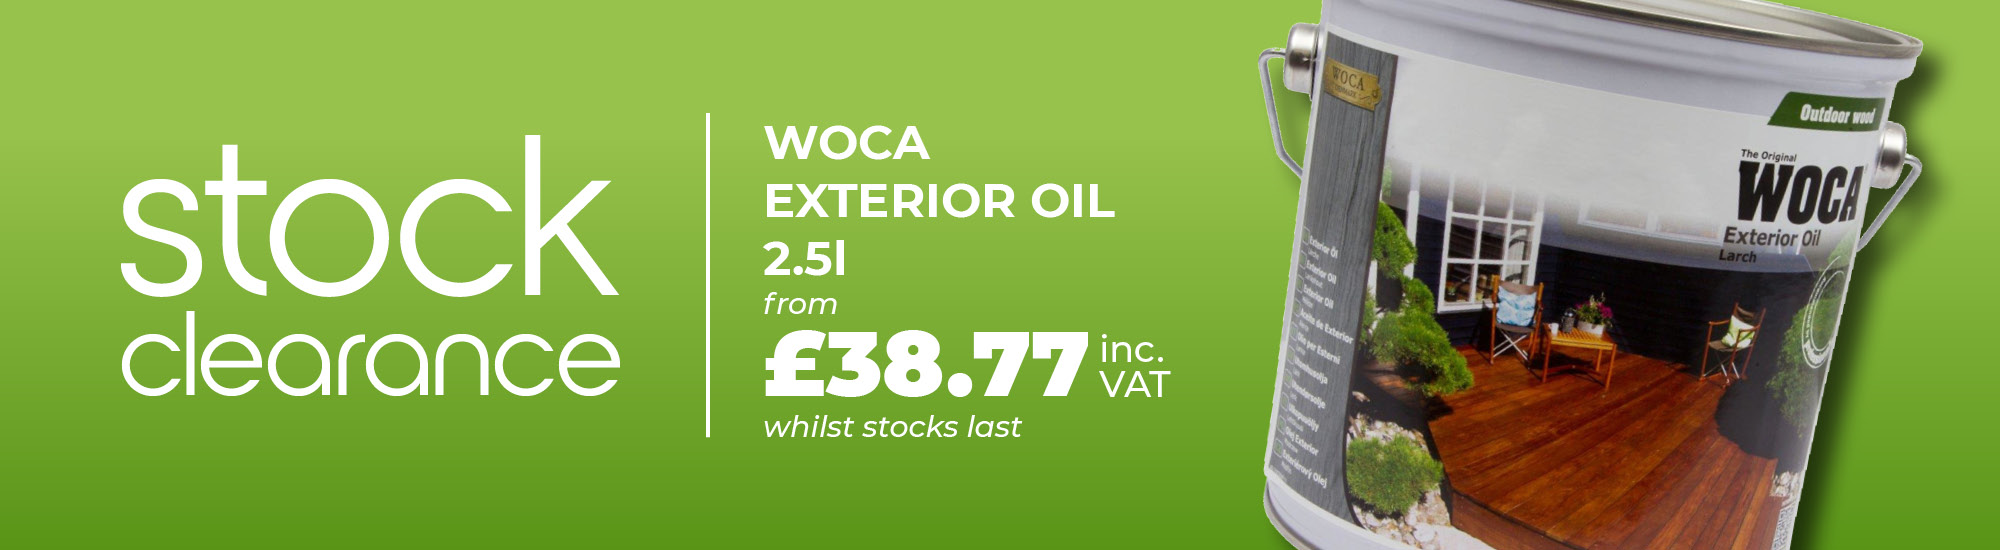 PT_Clearance_WOCA_Exterior_Oil_Banner